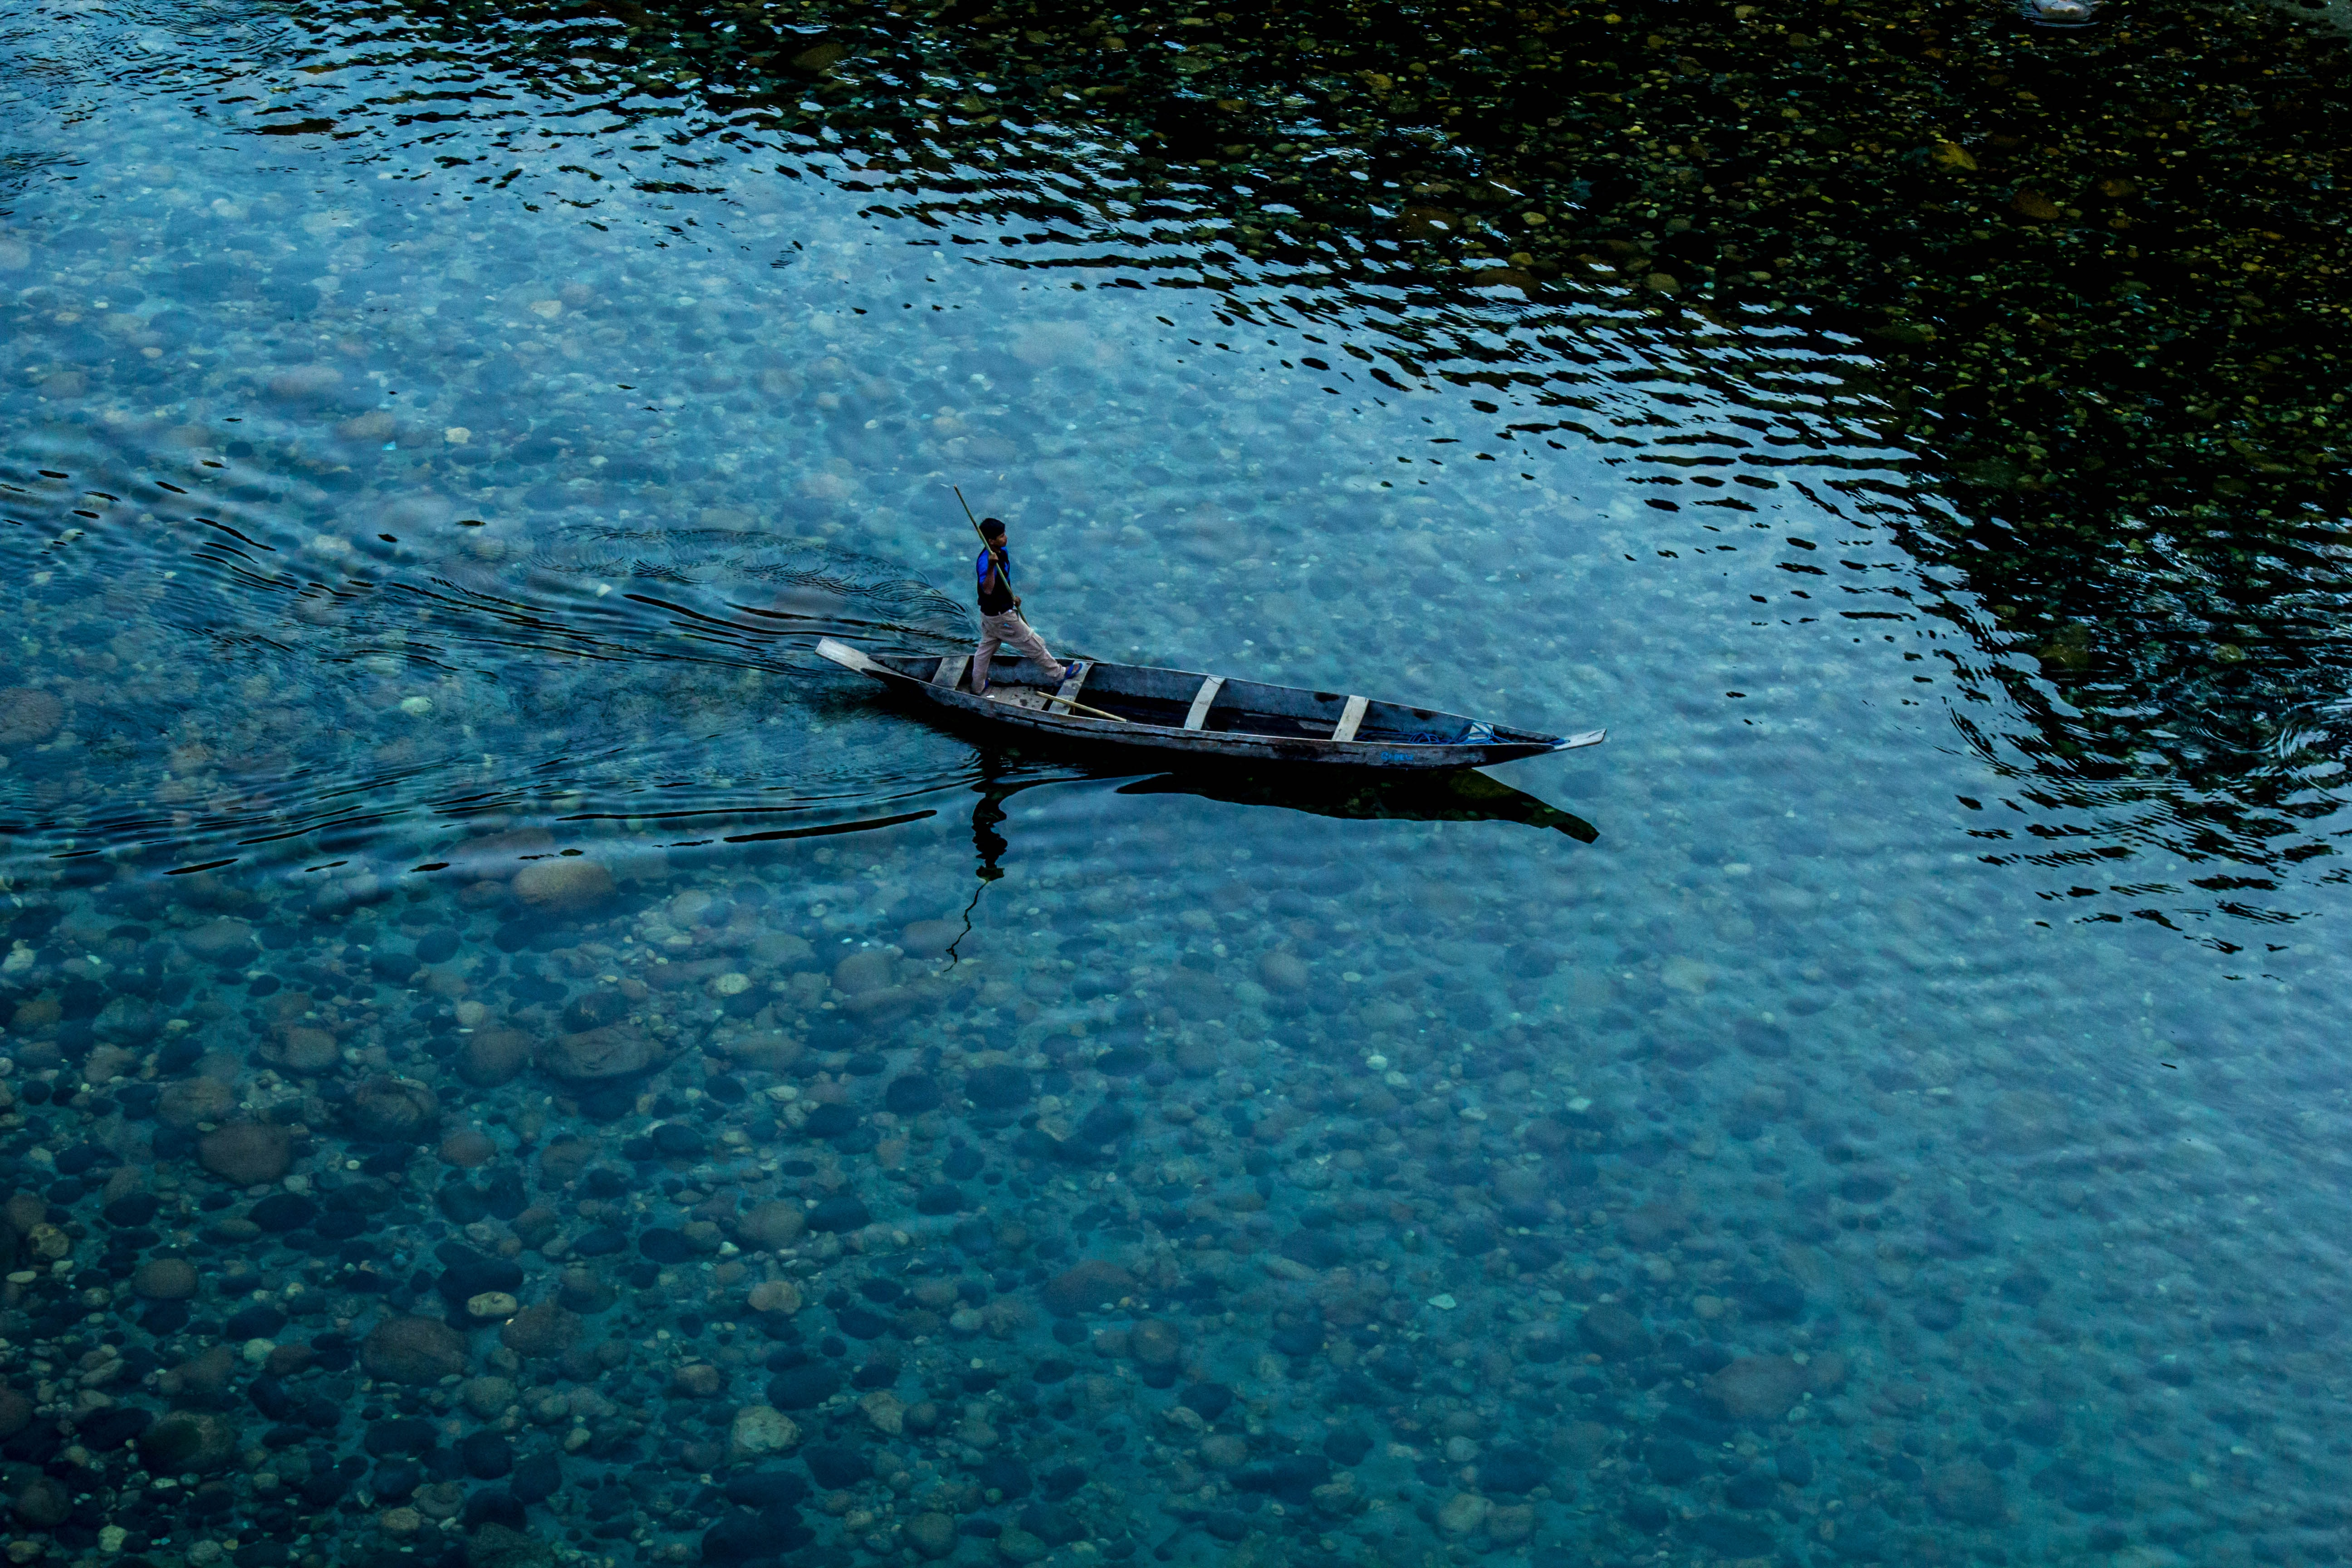 top view photo of man riding wooden boat on calm body of water